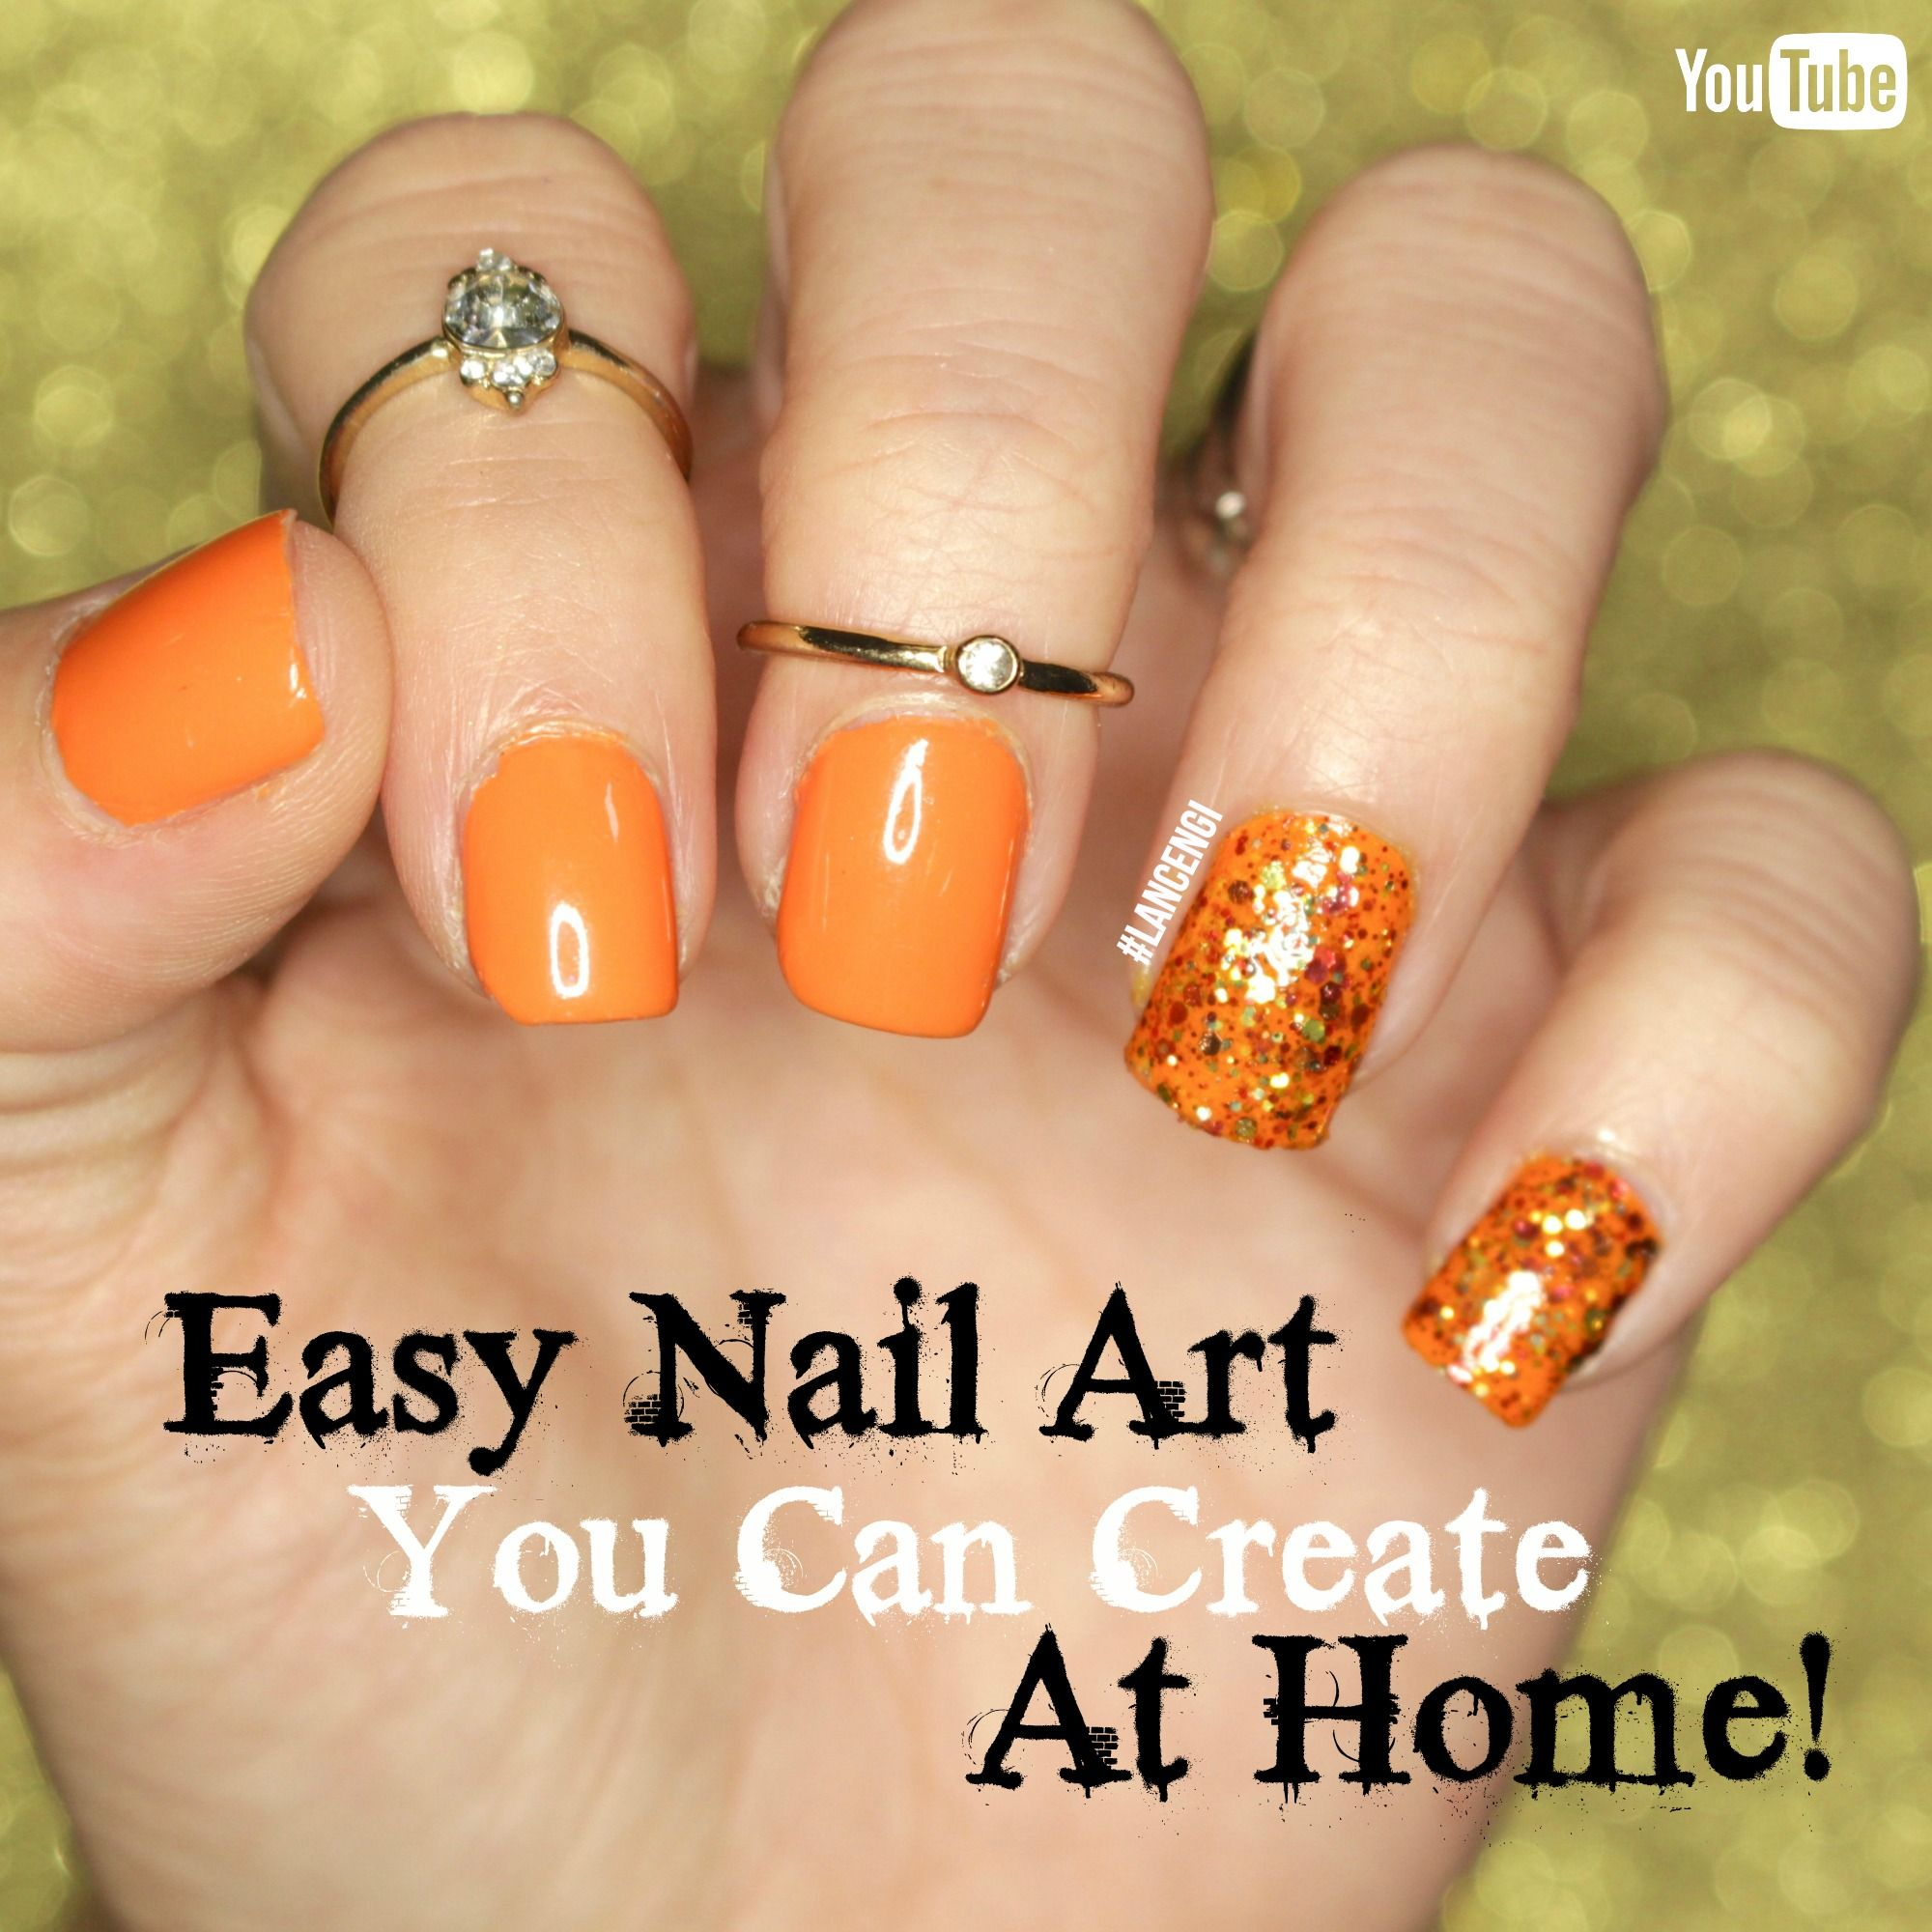 DIY Easy Halloween nail Art For beginners - Nail Art you can ... Holloween Nail Designs Easy To Do At Home on easy nail polish design, easy neon nail designs, easy nail designs for beginners, awesome easy nail designs, diy easy butterfly nail designs, easy do yourself nail designs, easy to do art, quick and easy nail designs, easy to do tattoo designs, easy to do nail designs for short nails, easy to do toenail designs, easy zebra nail designs, easy flower nail designs step by step,